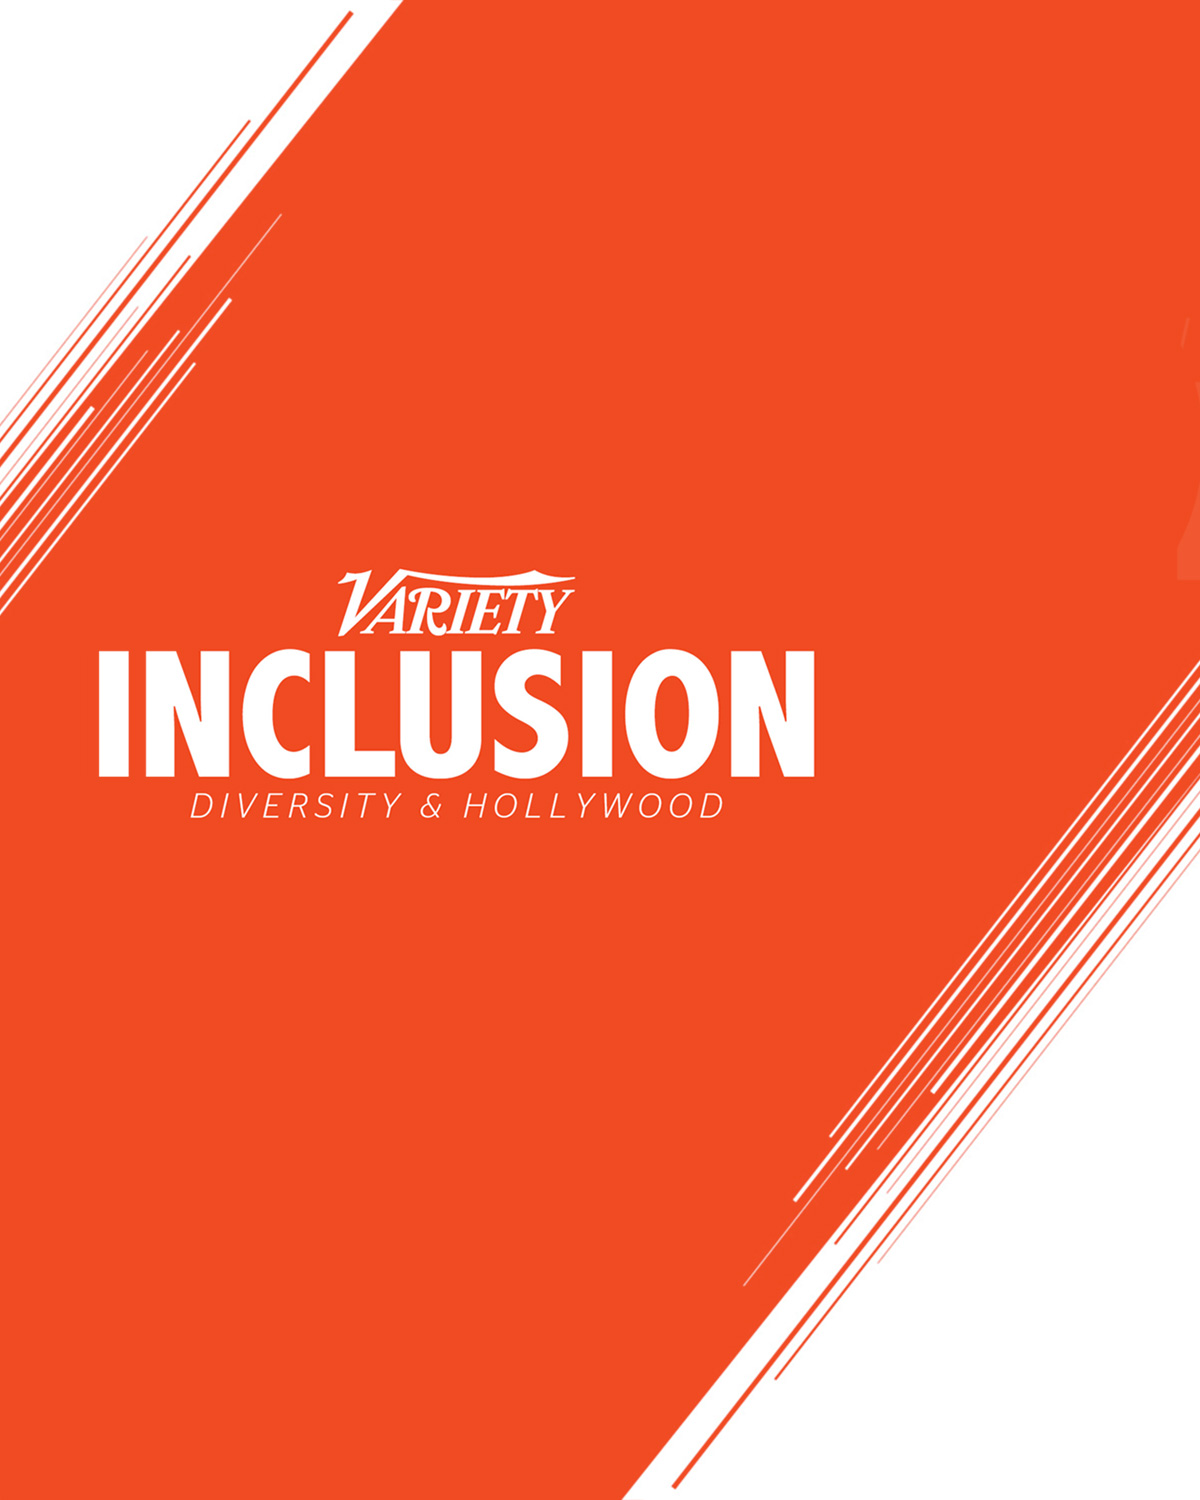 - Variety's Inclusion Impact Reportrecognized us as a leader bringing inclusion to the fore in the industry. To influence diversity, you must create authenticity so that others can better understand, accept, and respect us. We want to help tell a better story.